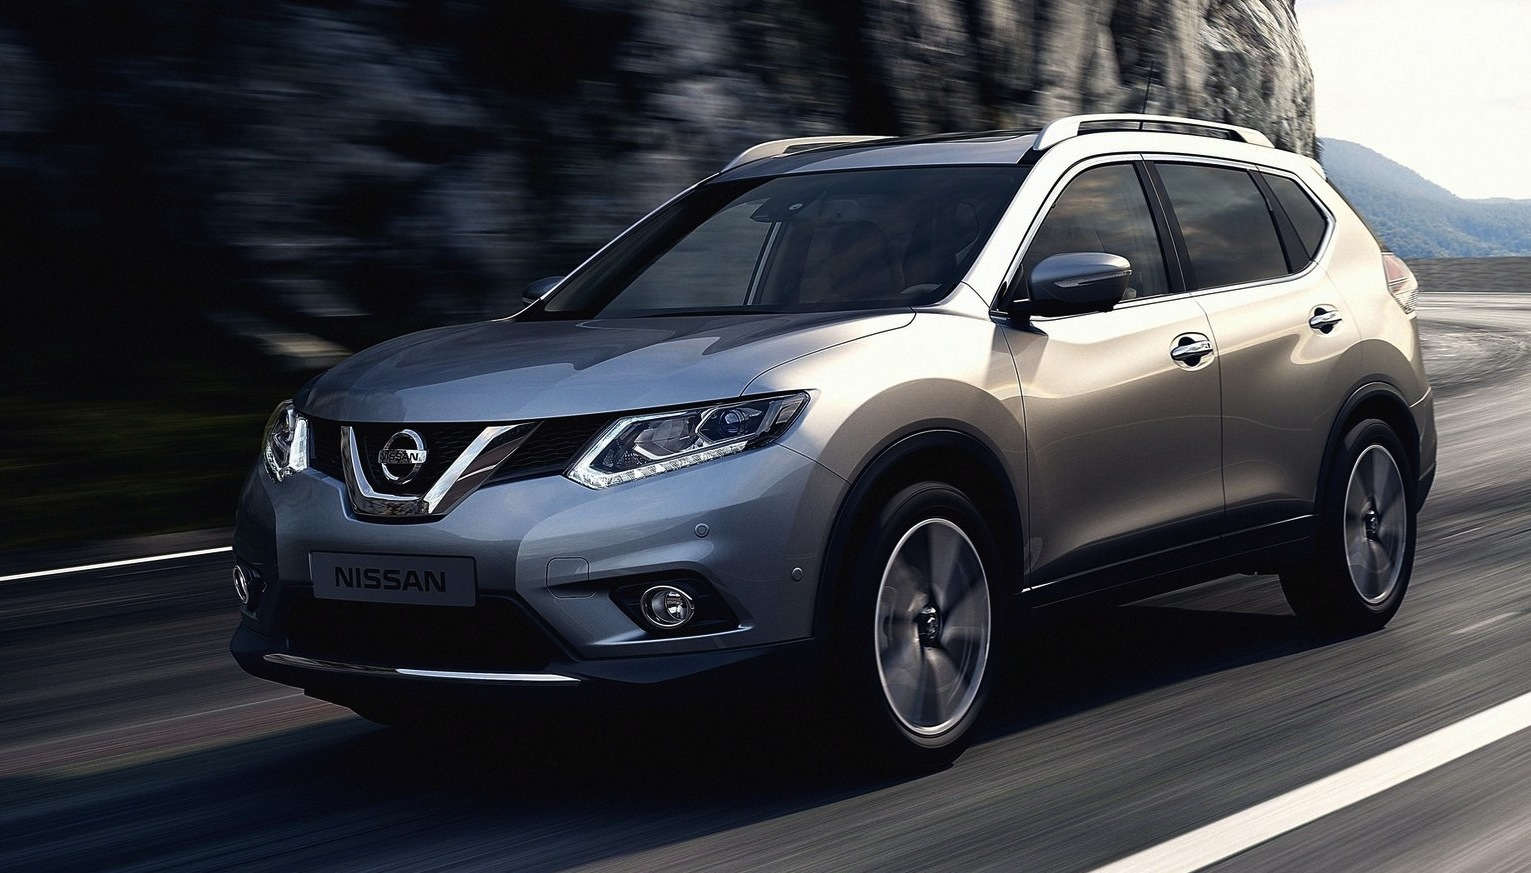 2014 nissan x trail softer styling and seven seats for third gen suv photos caradvice. Black Bedroom Furniture Sets. Home Design Ideas